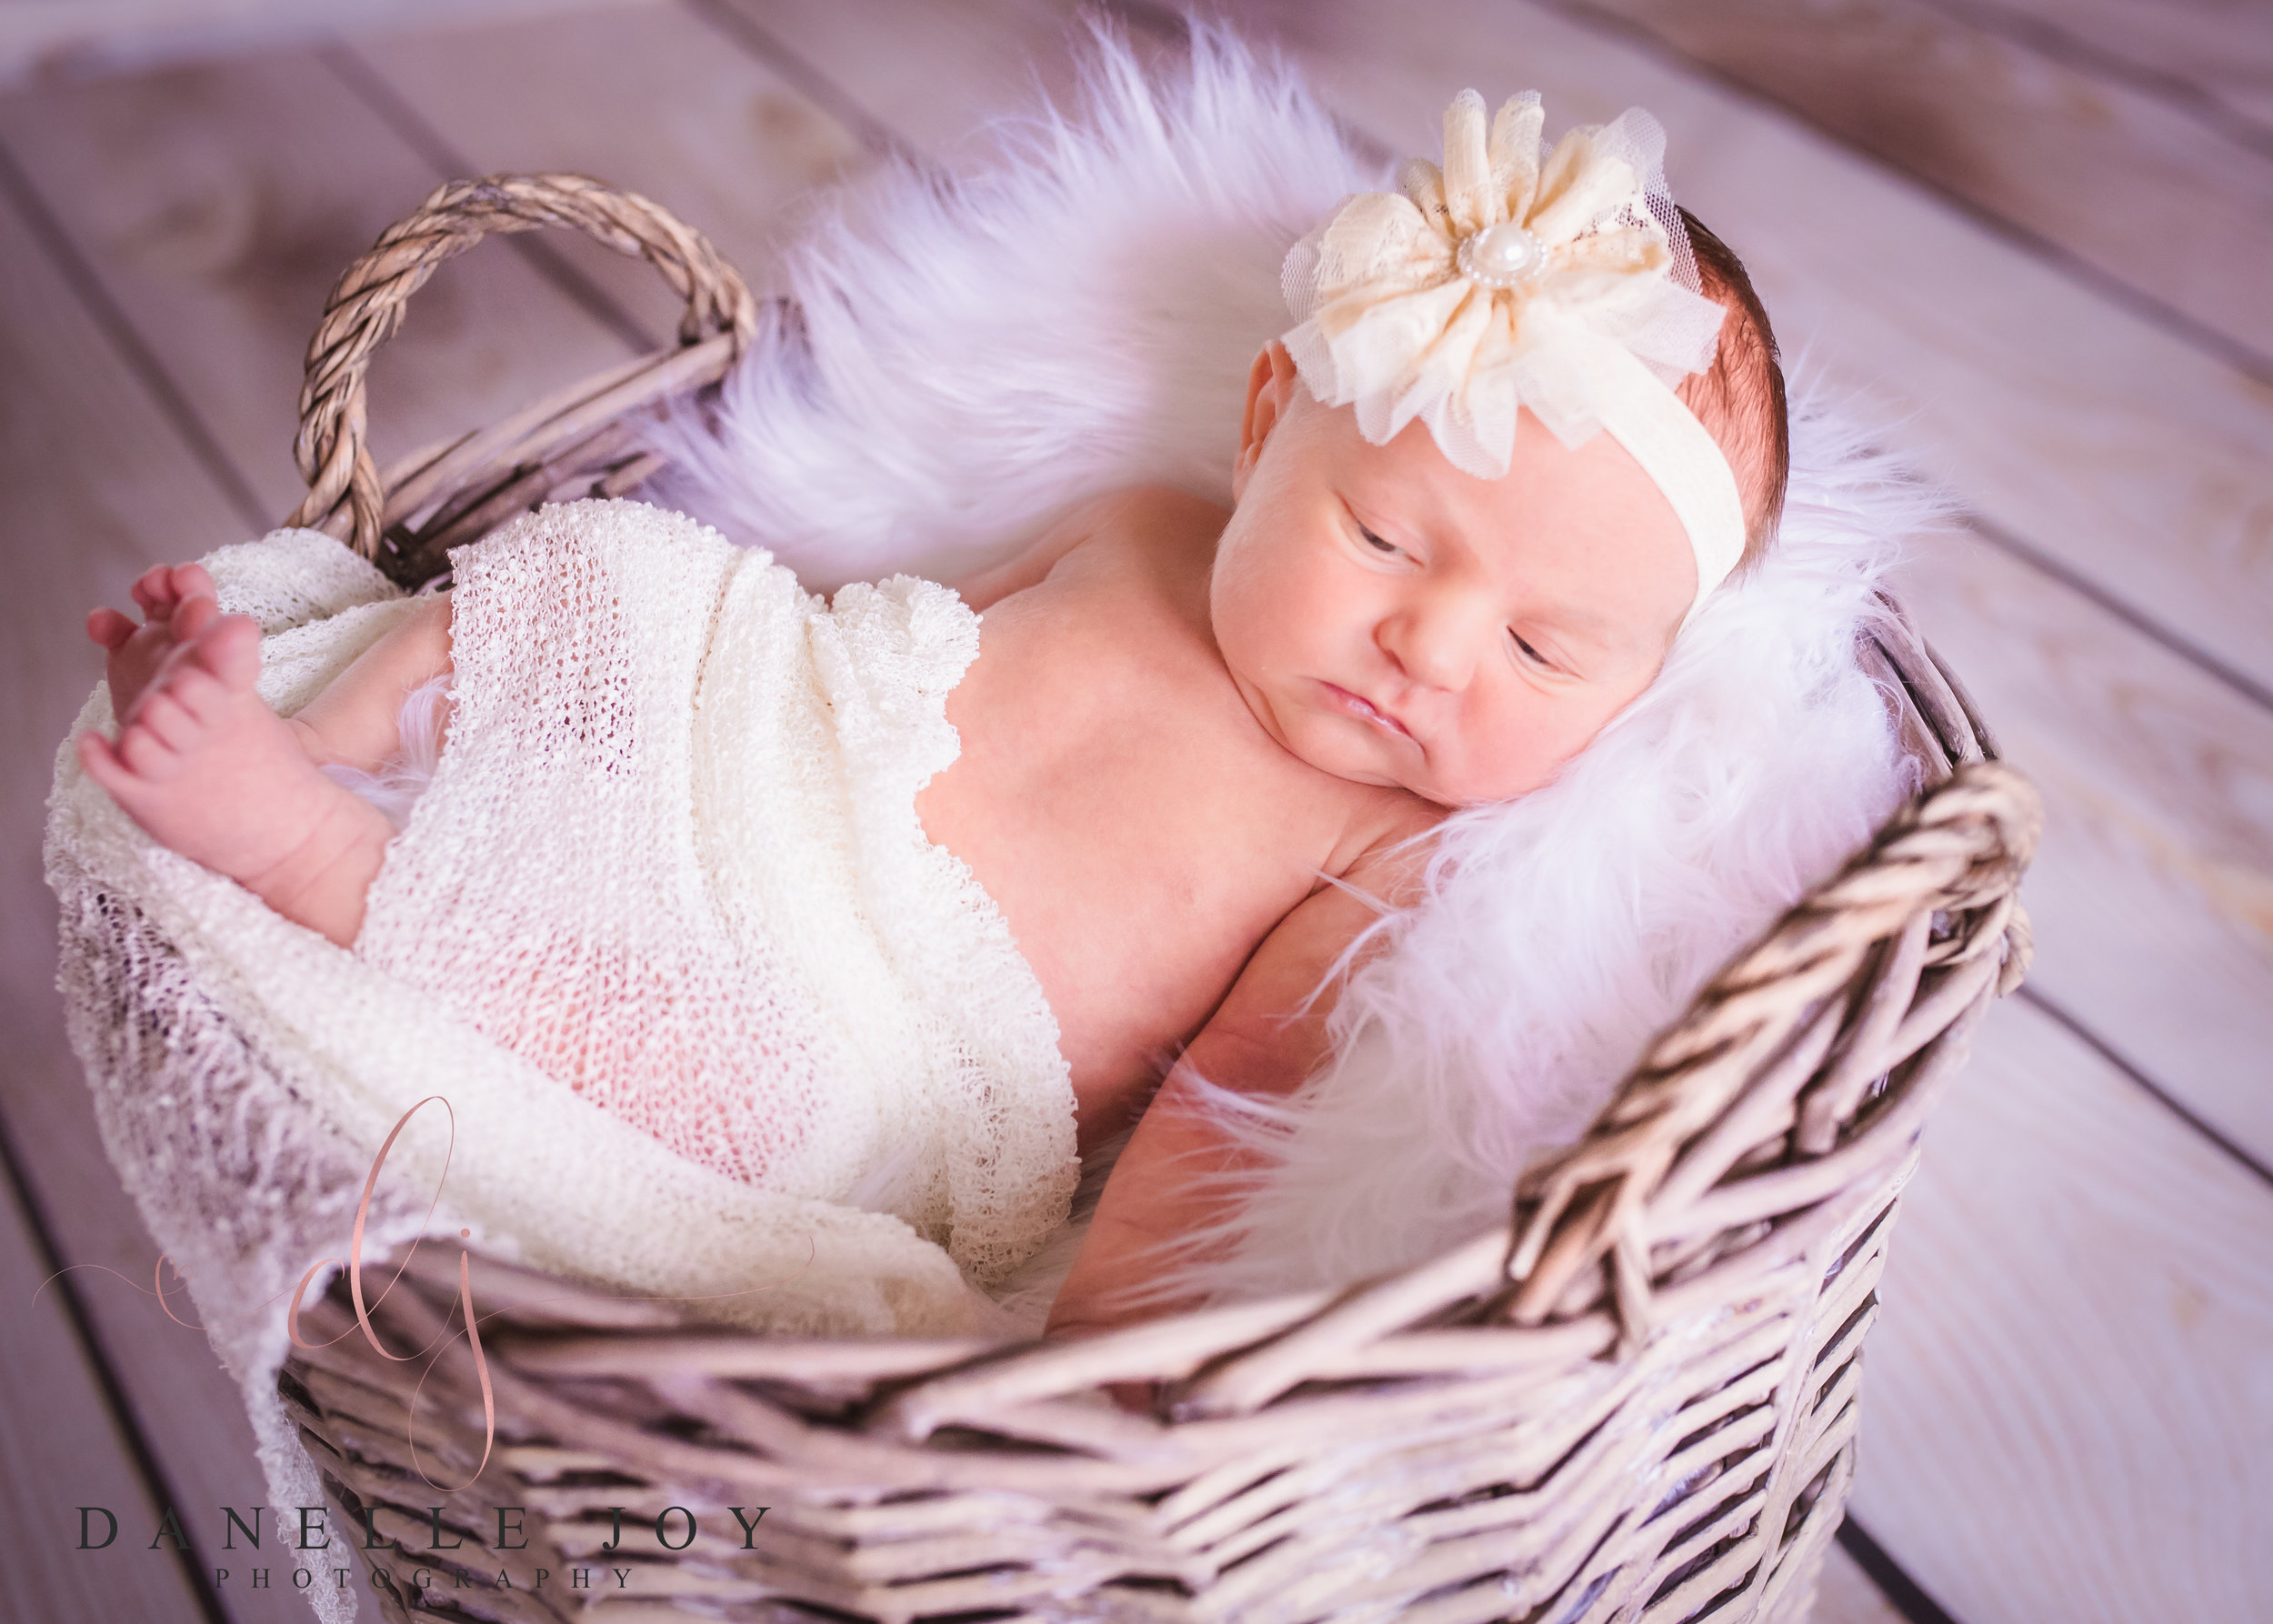 Newborn photography, newborn photographer, newborn posing, cleveland newborn photographer, mentor ohio photographer